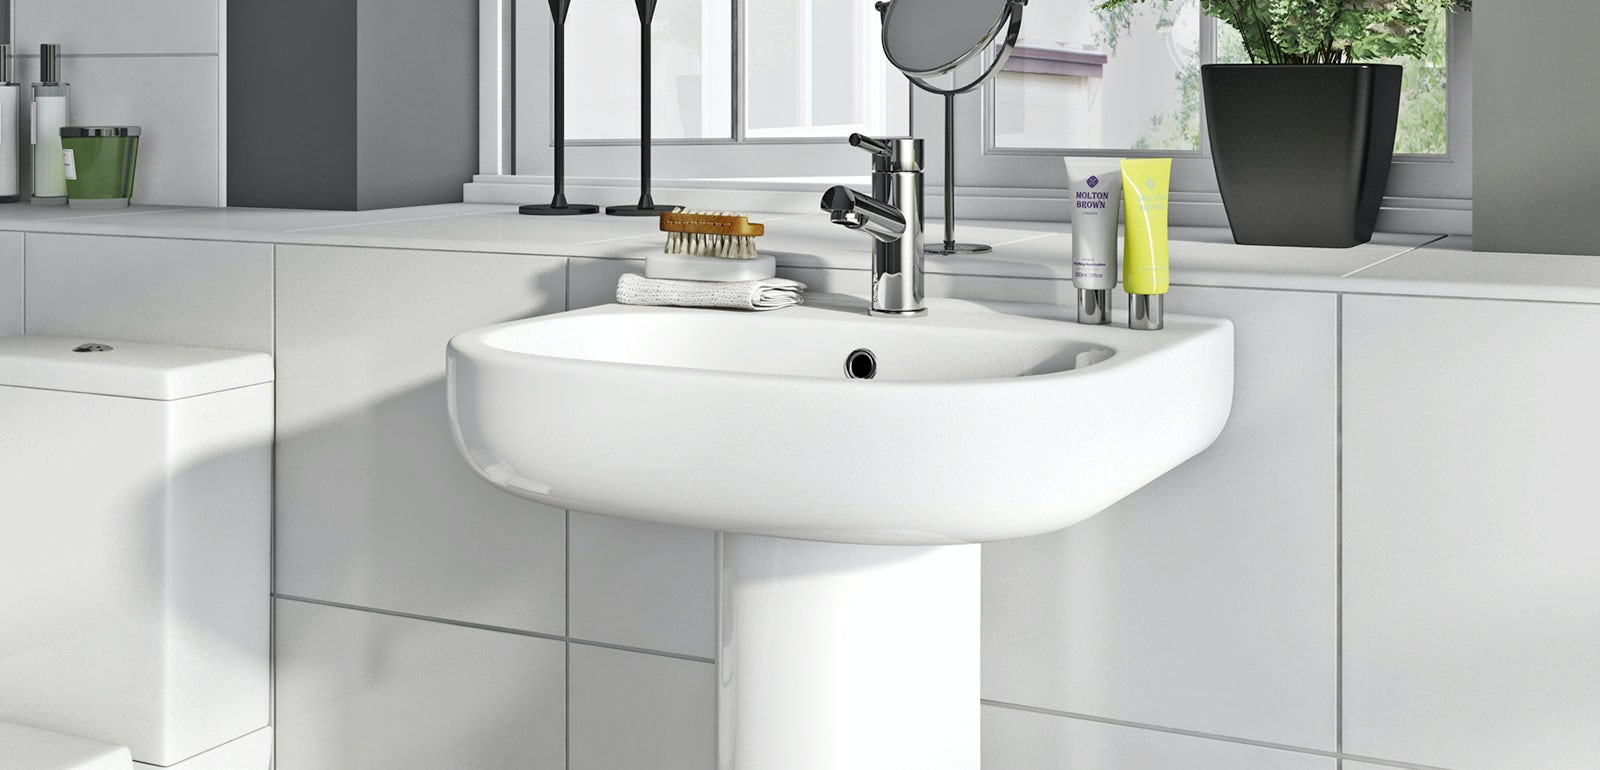 Lune bathroom suite range